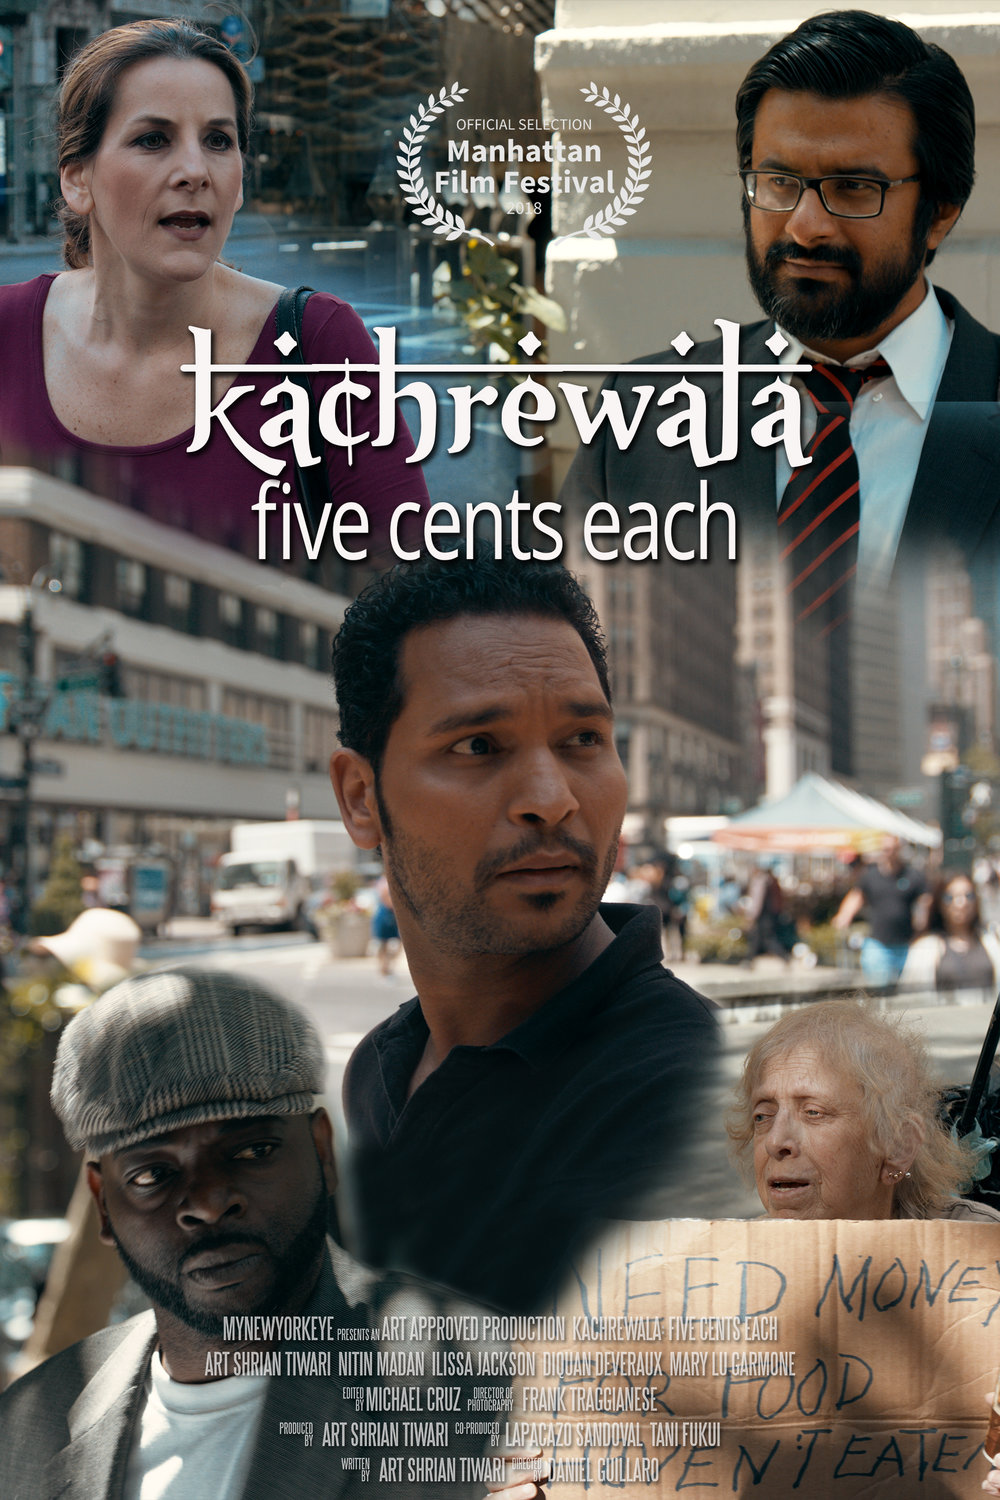 KACHREWALA Five Cents Each - collage poster.jpg